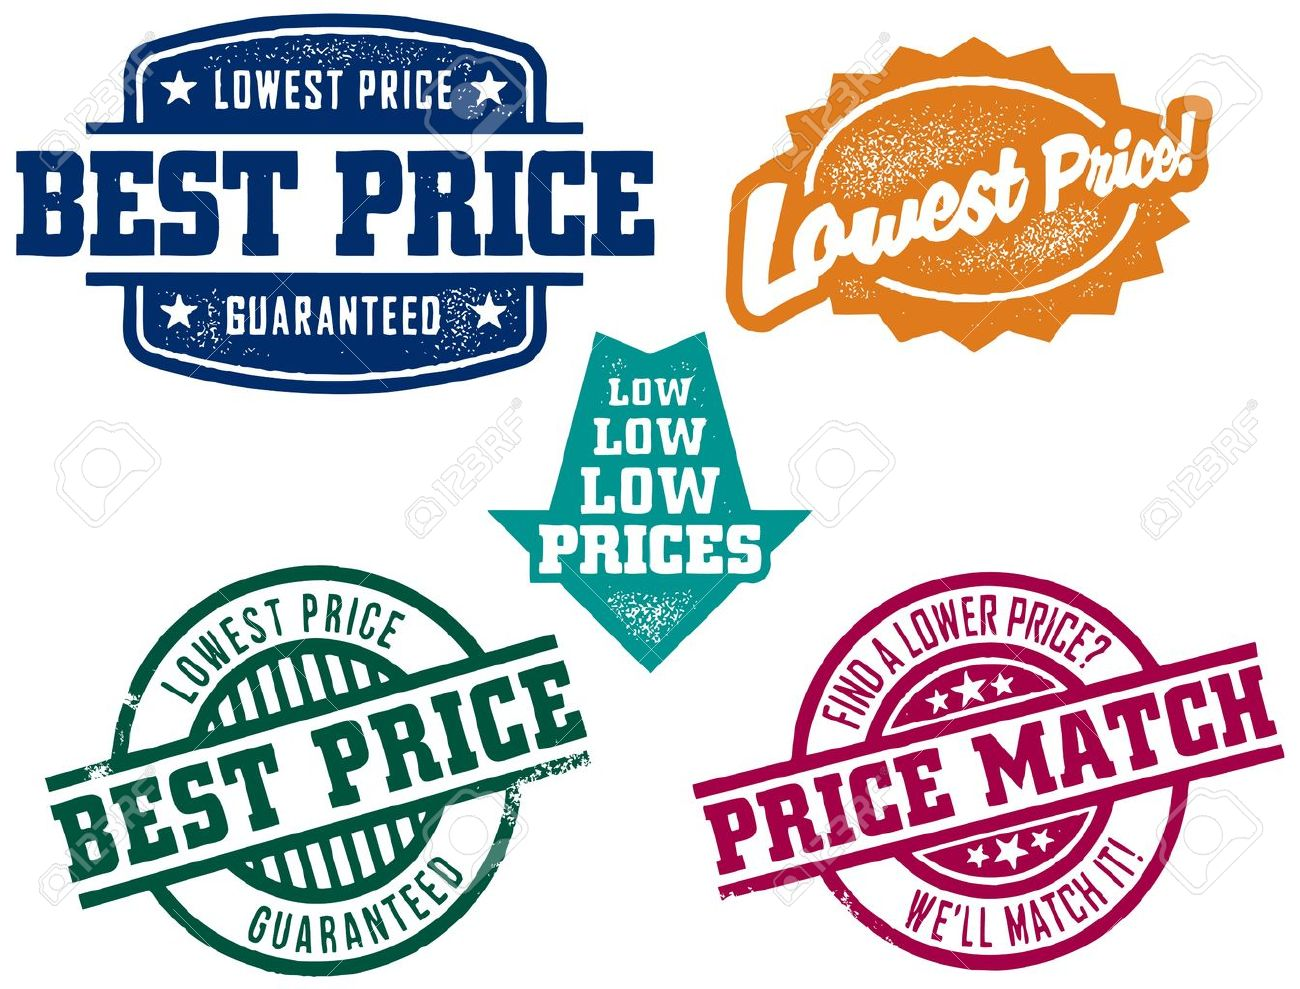 Low Price Stamps Stock Vector - 10436257